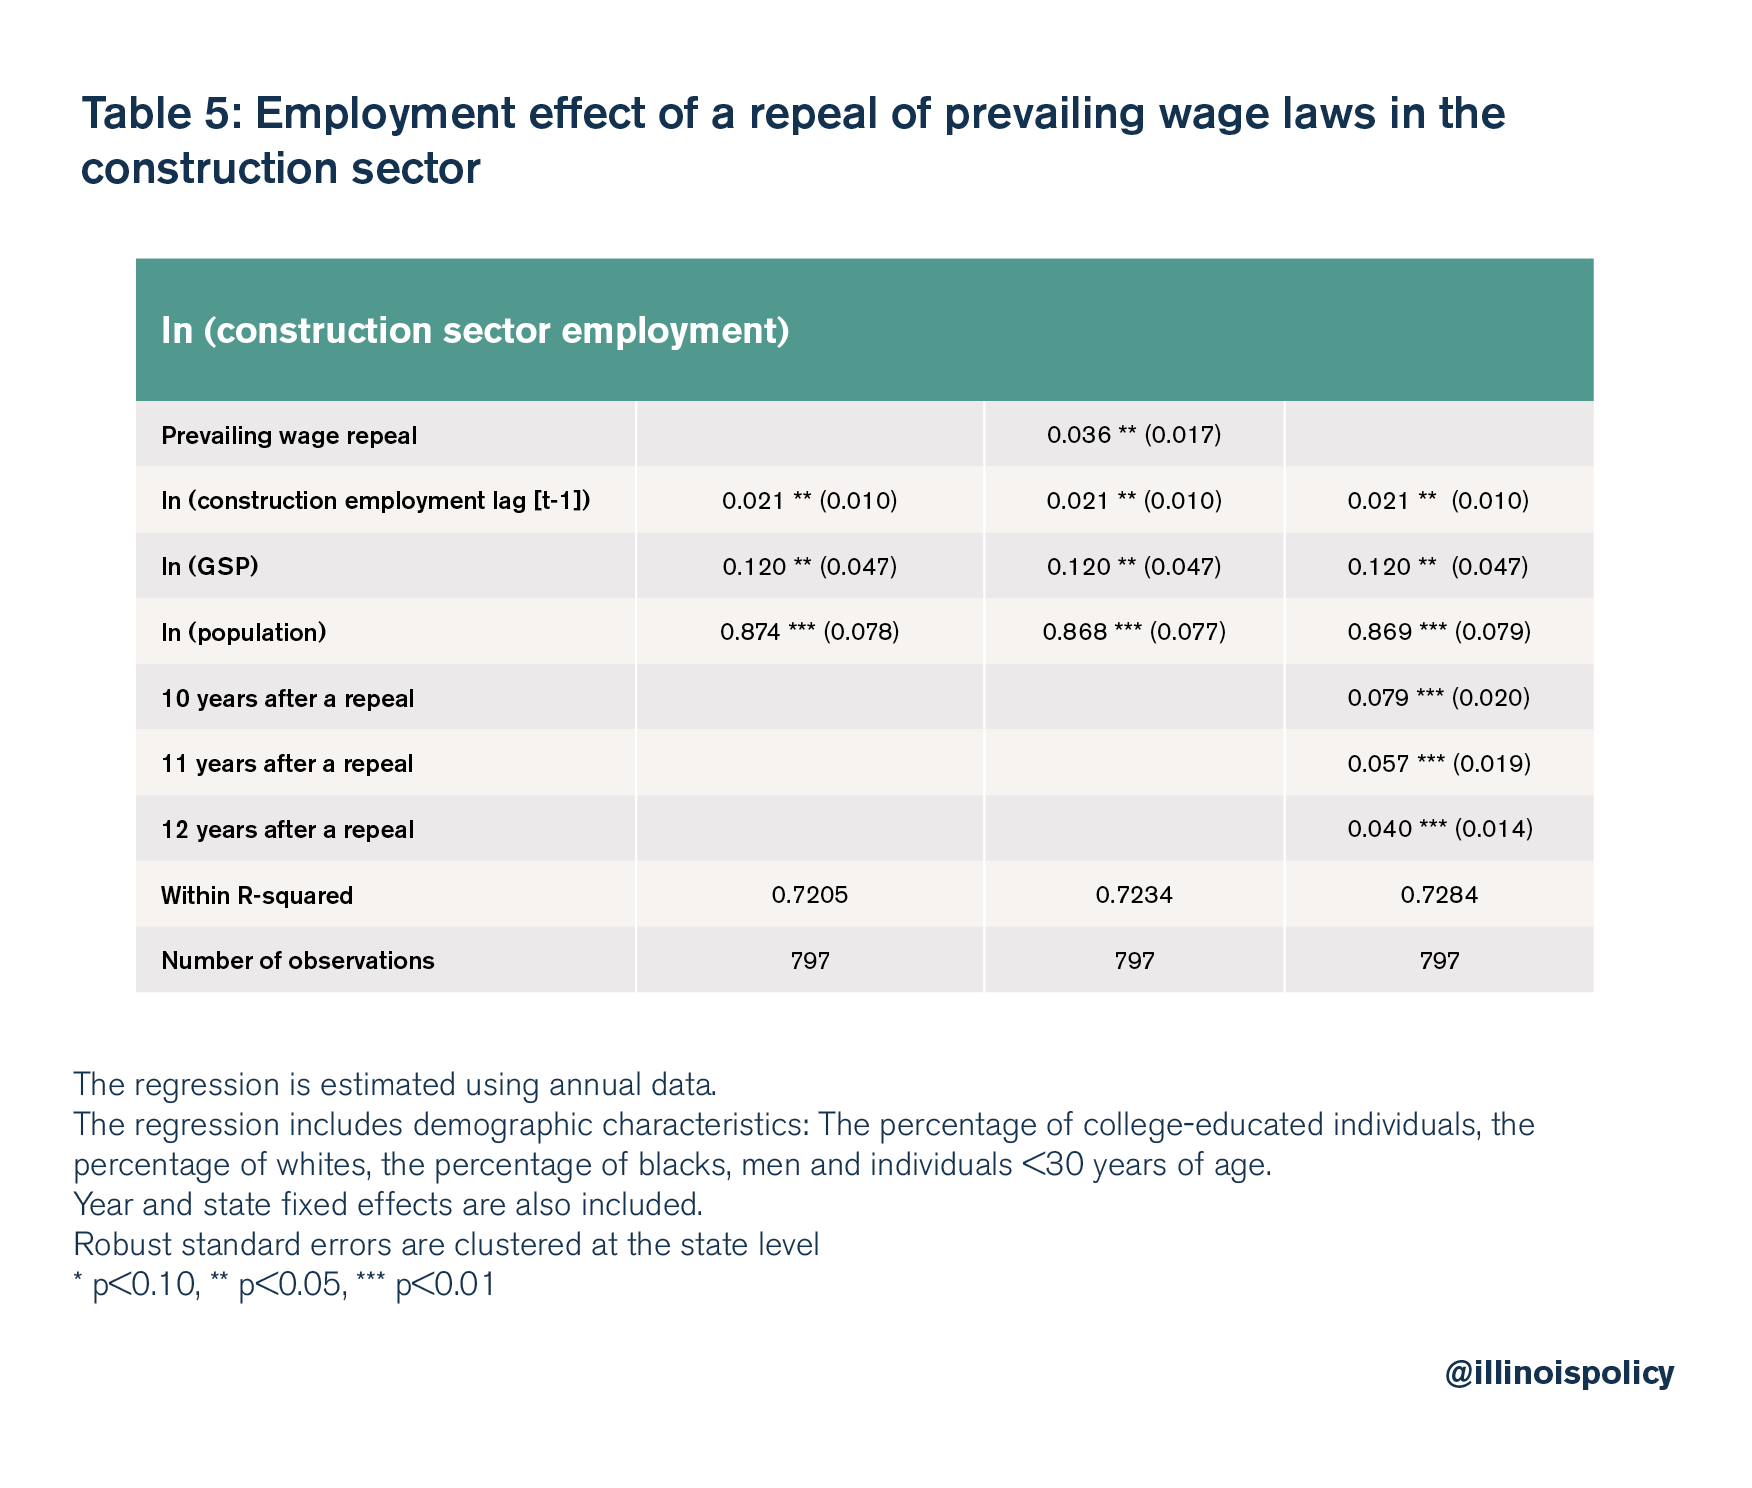 Employment effect of a repeal of prevailing wage laws in the construction sector